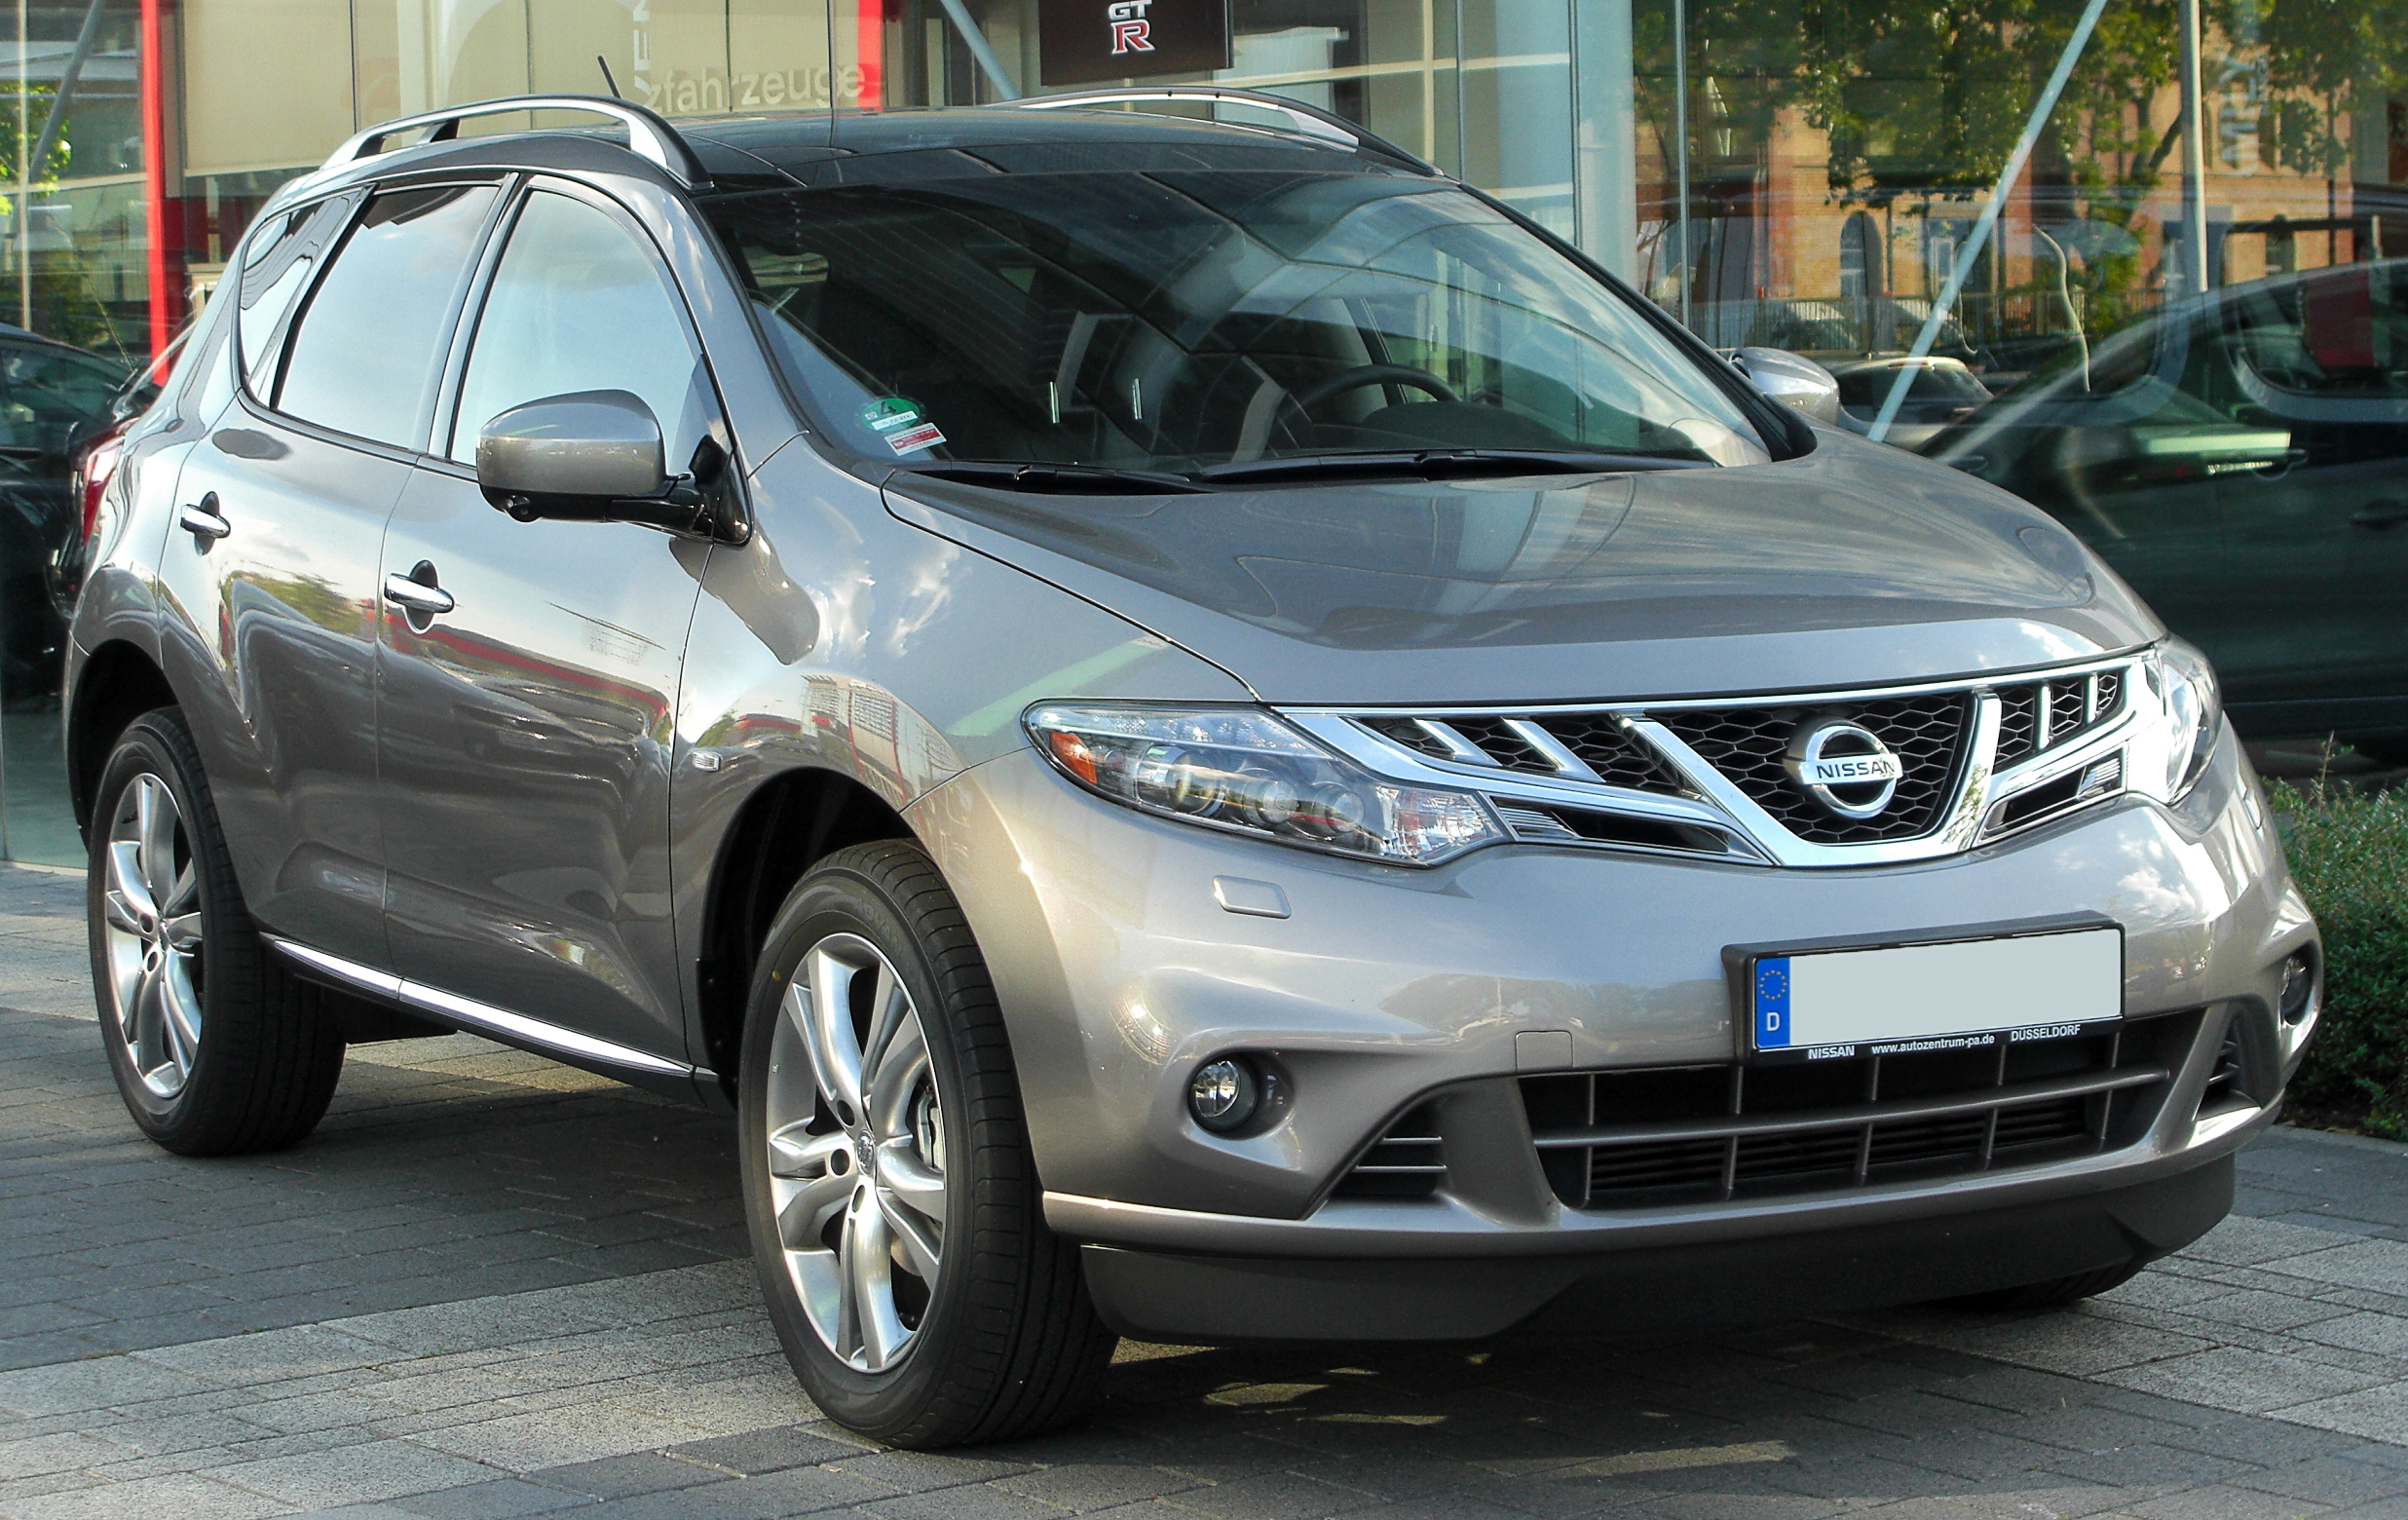 file nissan murano 2 5 dci z51 facelift front. Black Bedroom Furniture Sets. Home Design Ideas